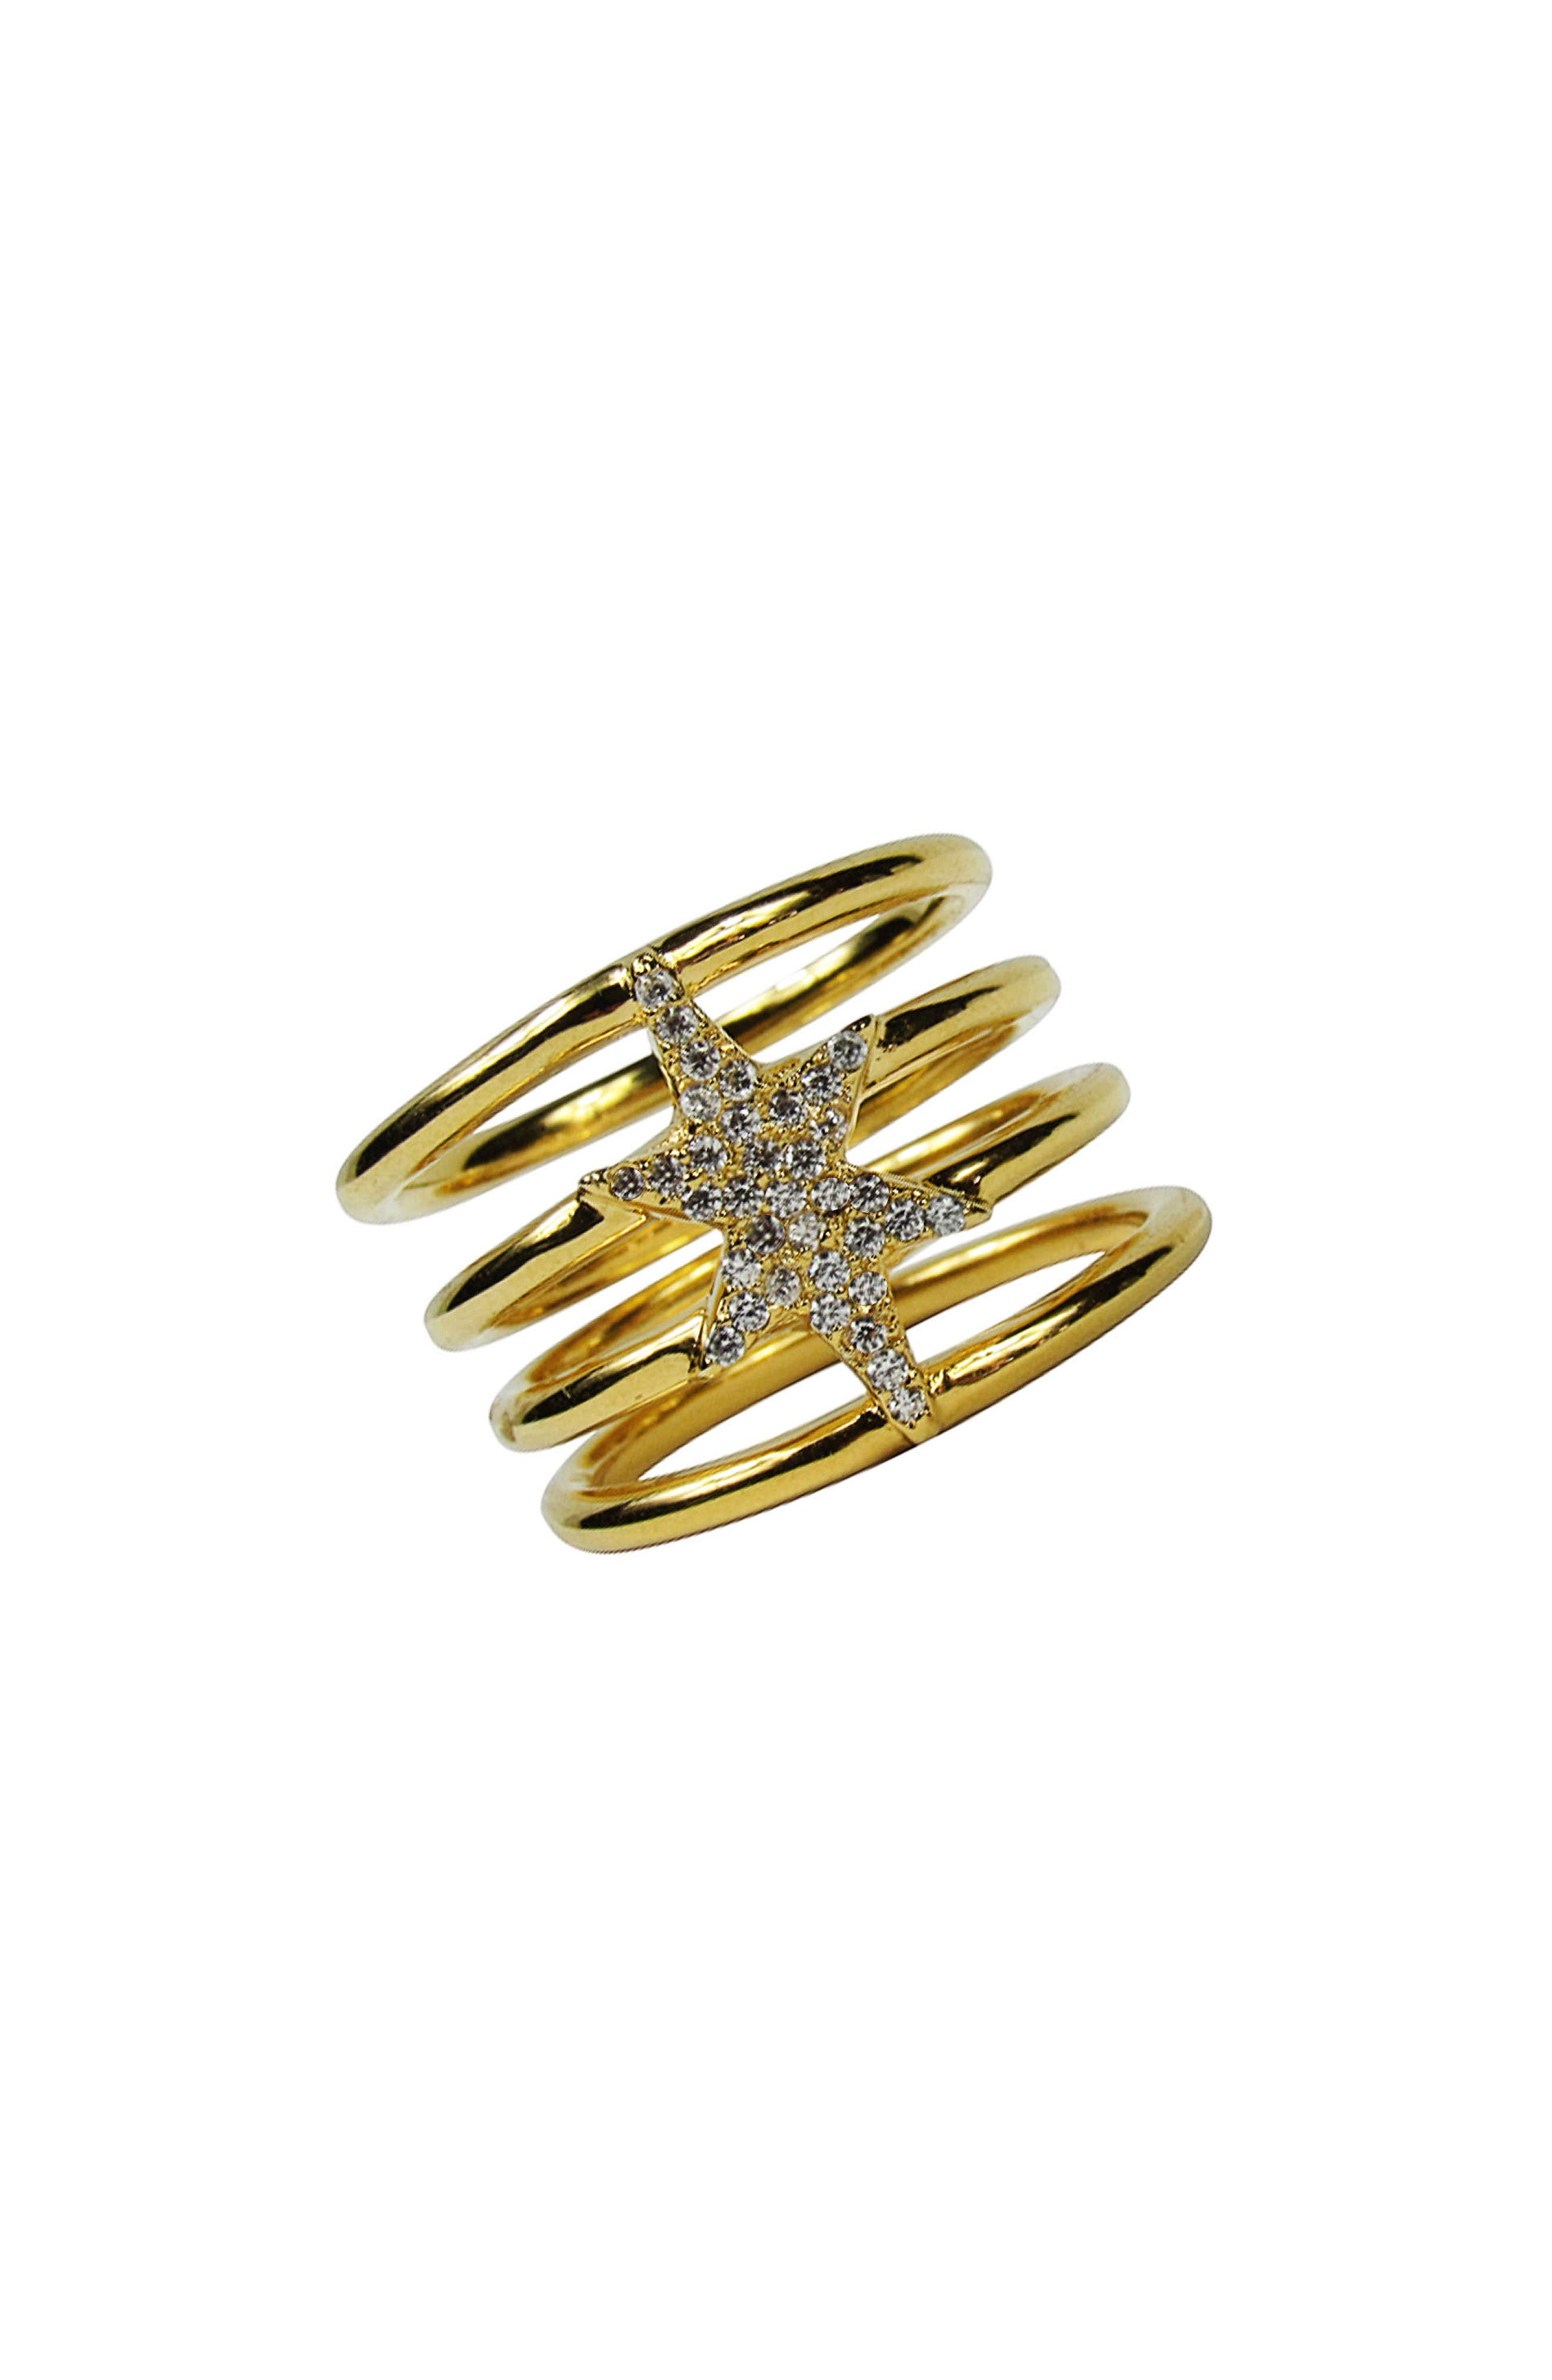 North Star Statement Ring,                         Main,                         color, Gold